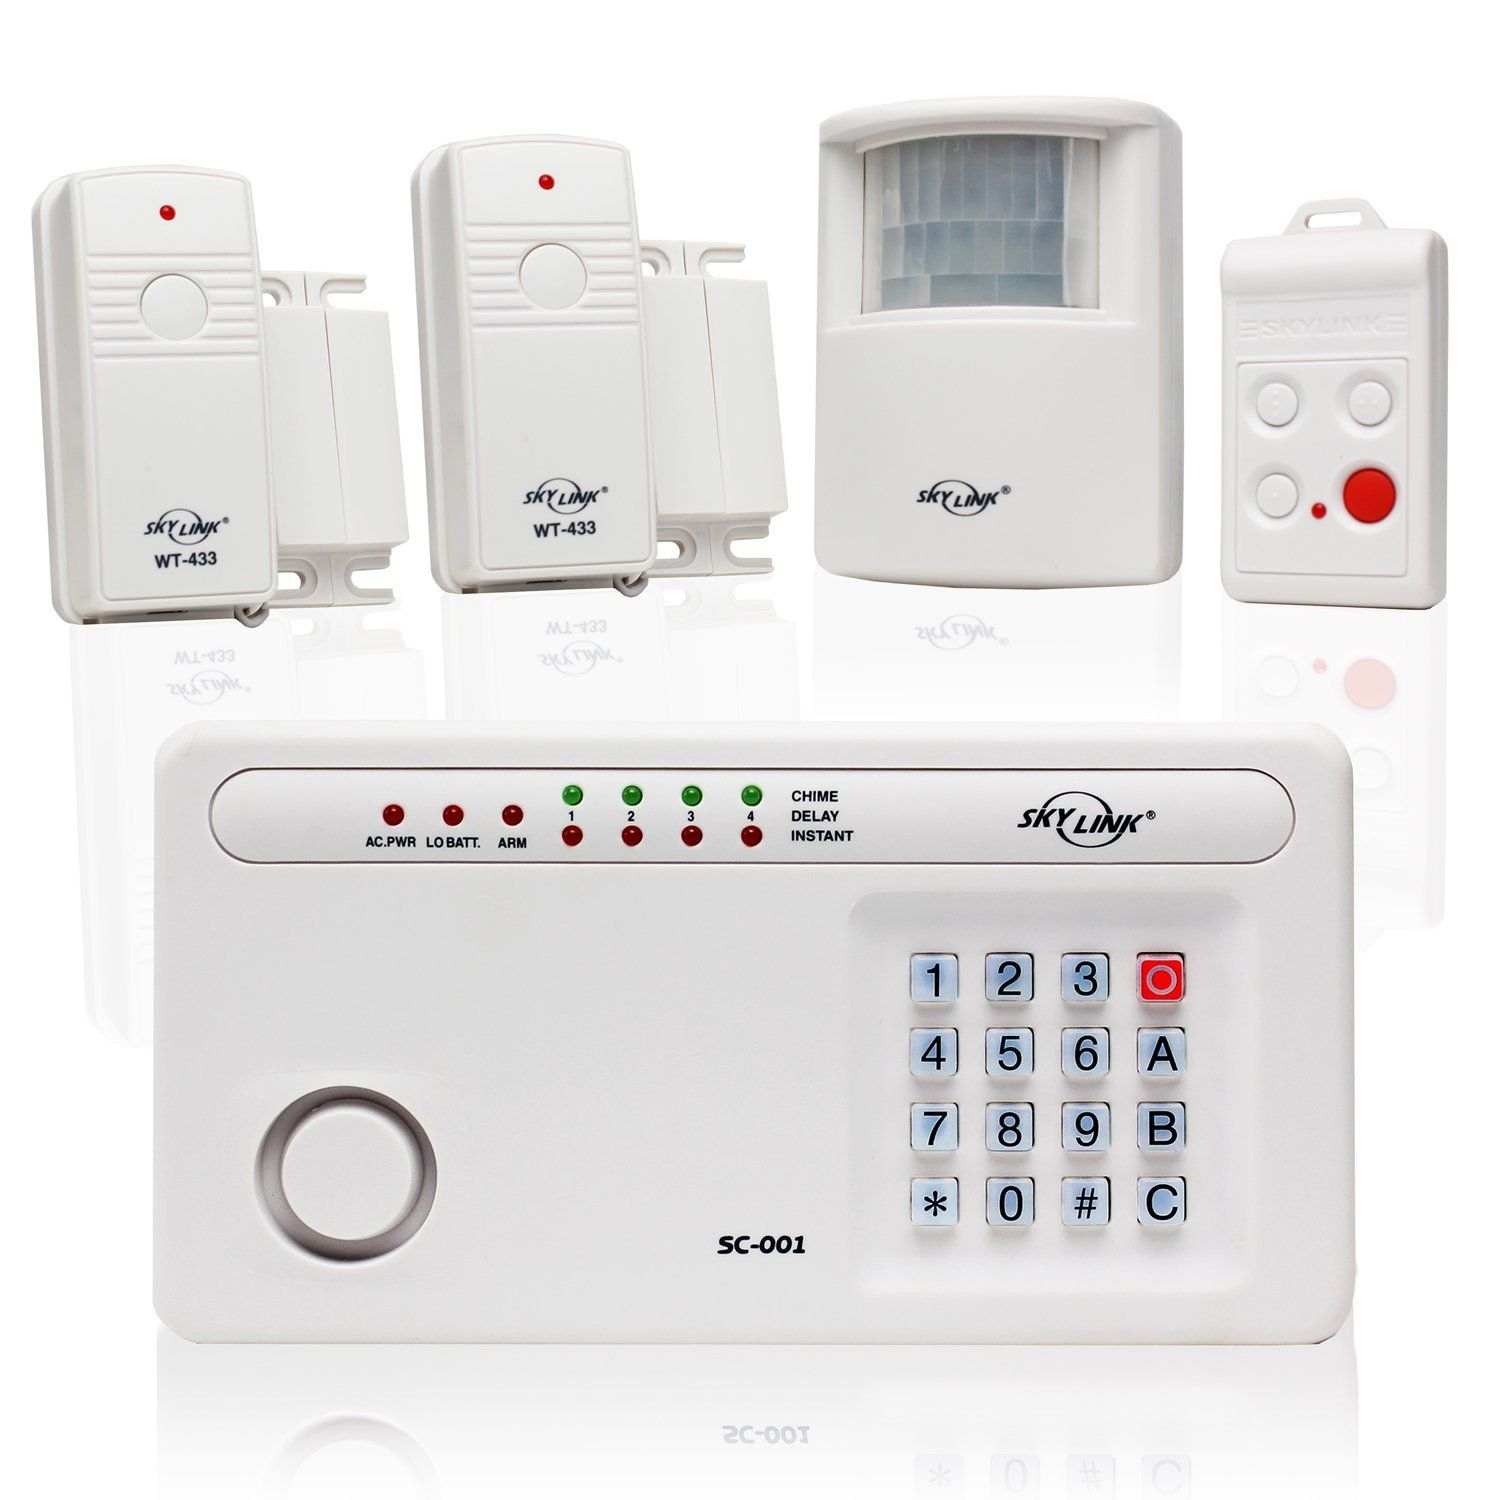 Skylink sc 100w wireless deluxe home and office burglar alarm system skylink sc 100w wireless deluxe home and office burglar alarm system alert security package affordable easy to install diy to view further solutioingenieria Choice Image